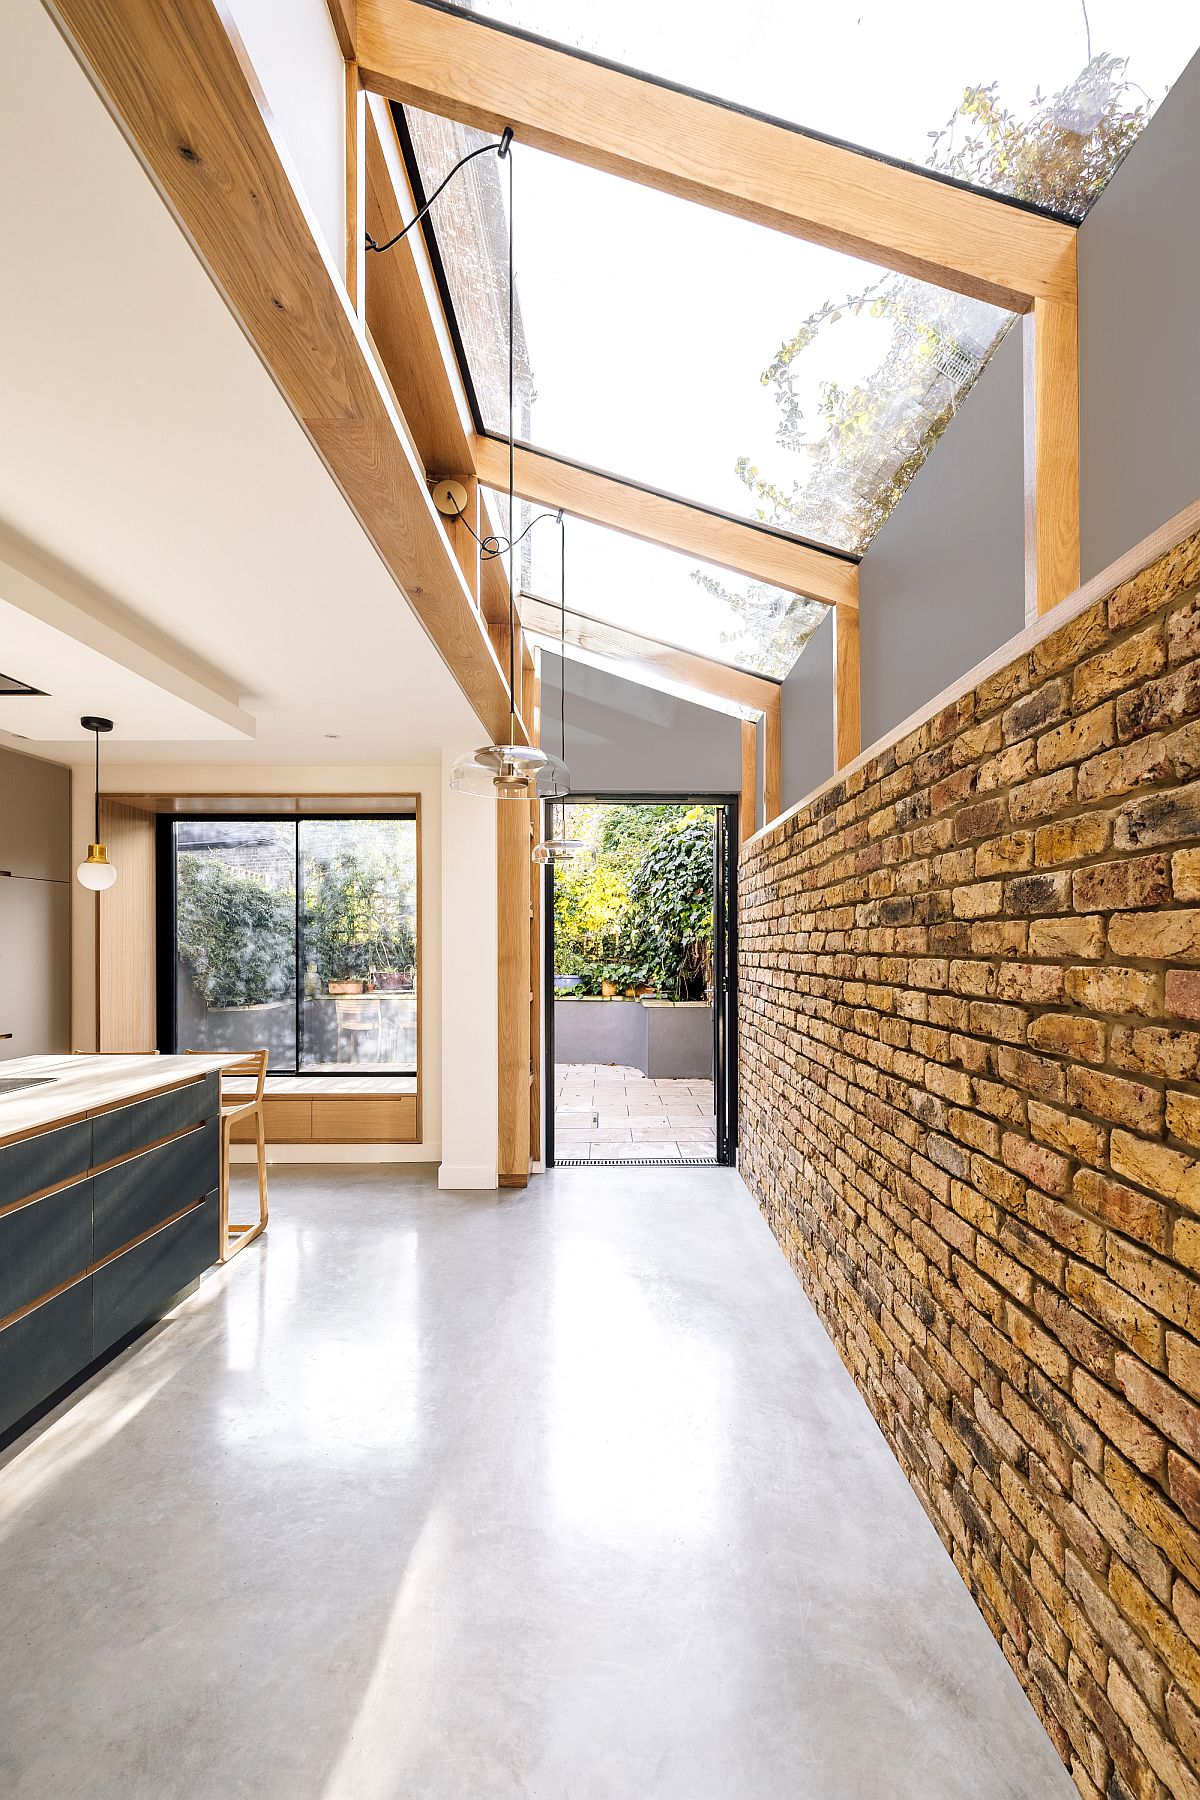 Lovely extensive roof light of the kitchen brings natural light into an aging Victorian home